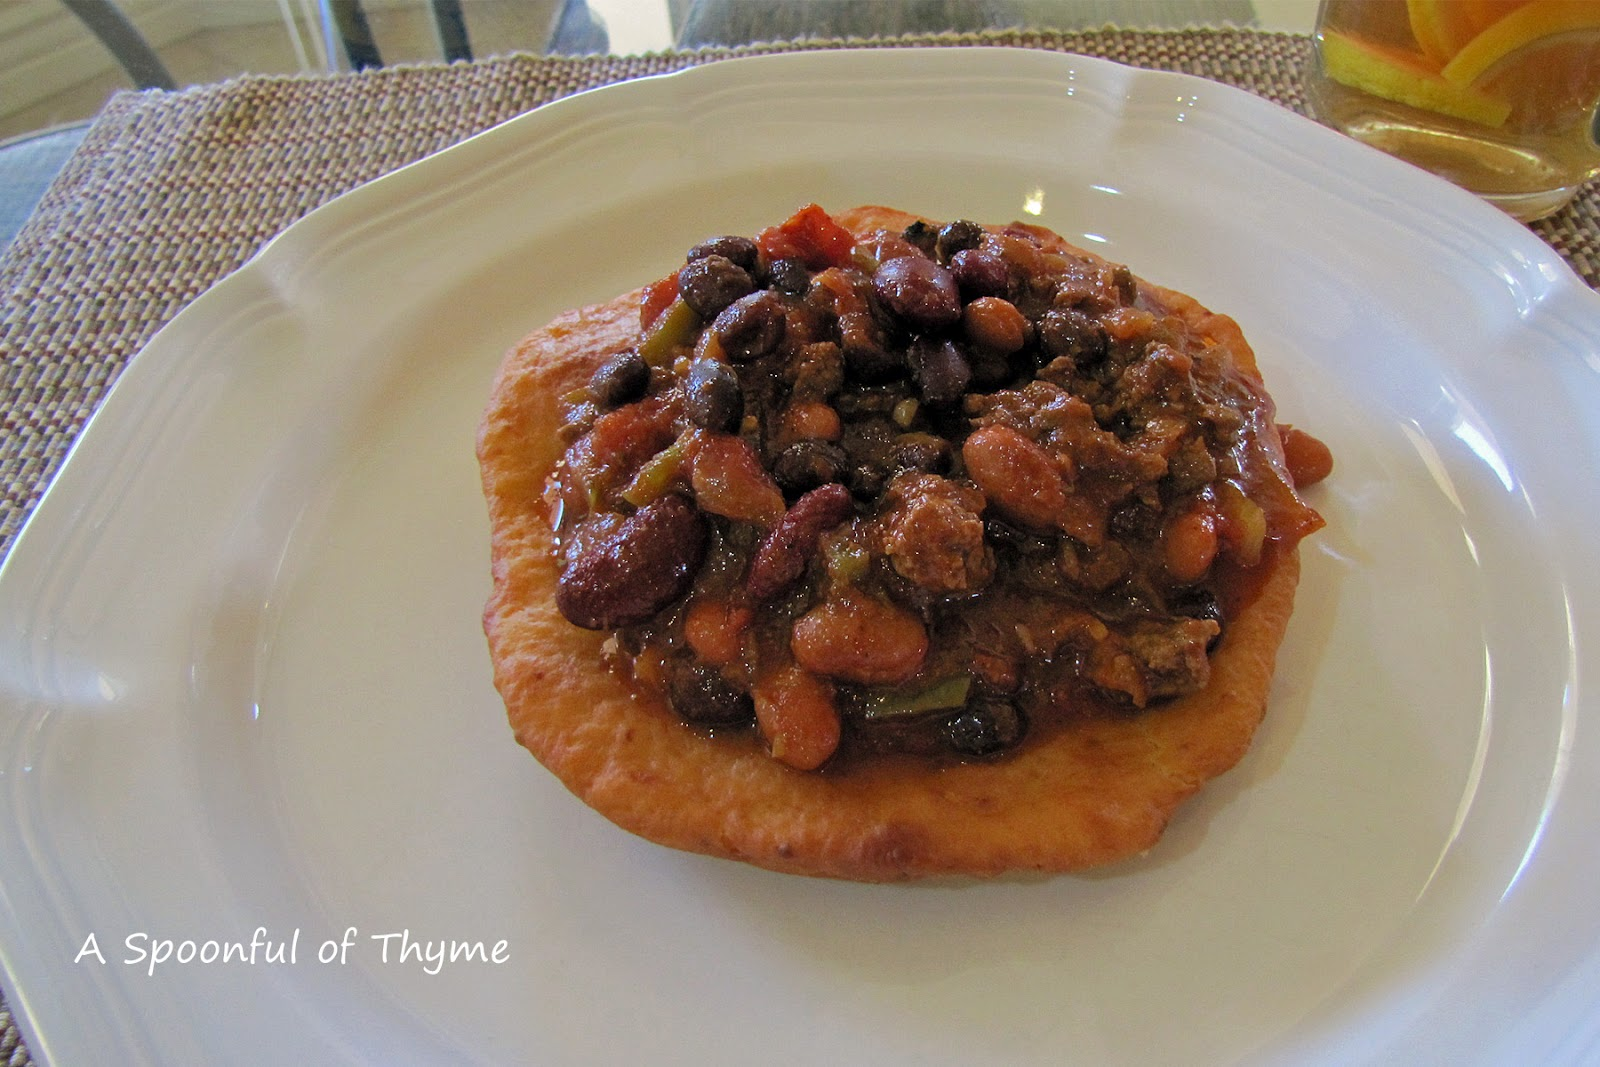 Spoonful of Thyme: Navajo Tacos - Beef and Three Bean Chili